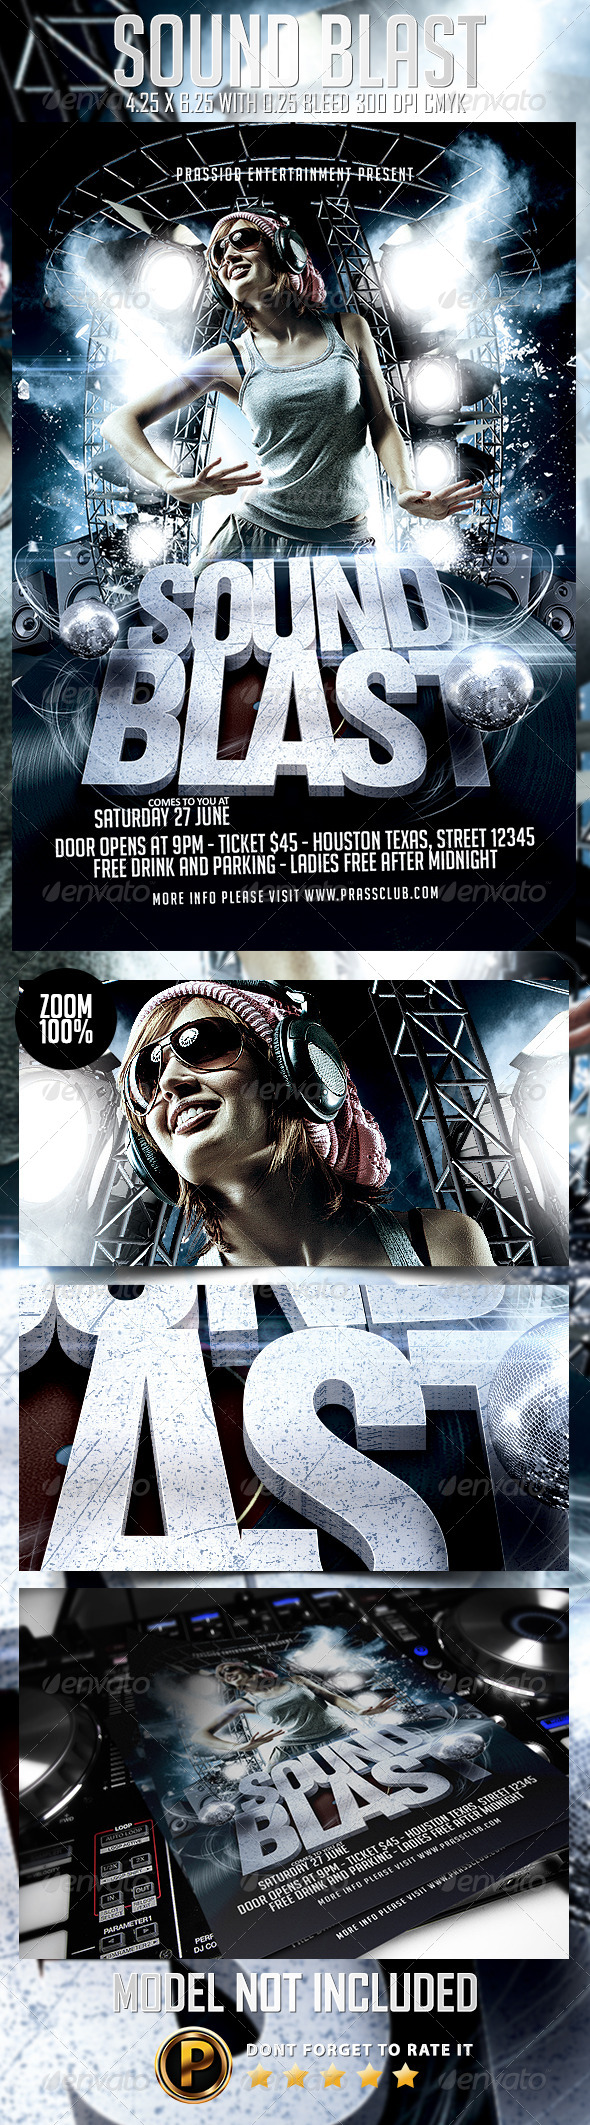 Sound Blast Flyer Template - Clubs & Parties Events